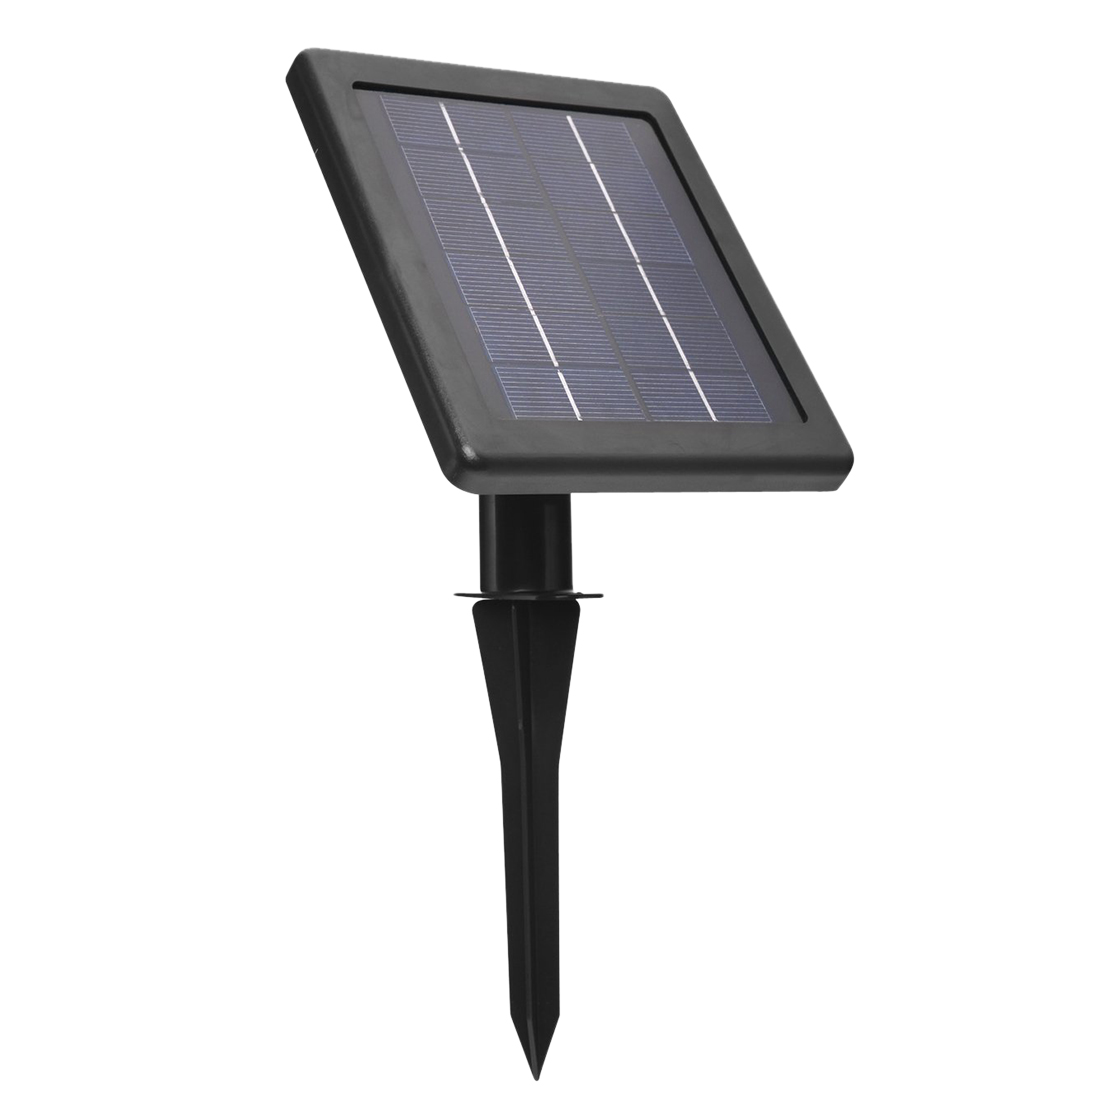 Rechargeable Waterproof Solar Powered 30 LED Spot Light White Lamp with Lithium Battery Inside for Lawn, Garden, Road, Hotel solar battery powered butterfly random color